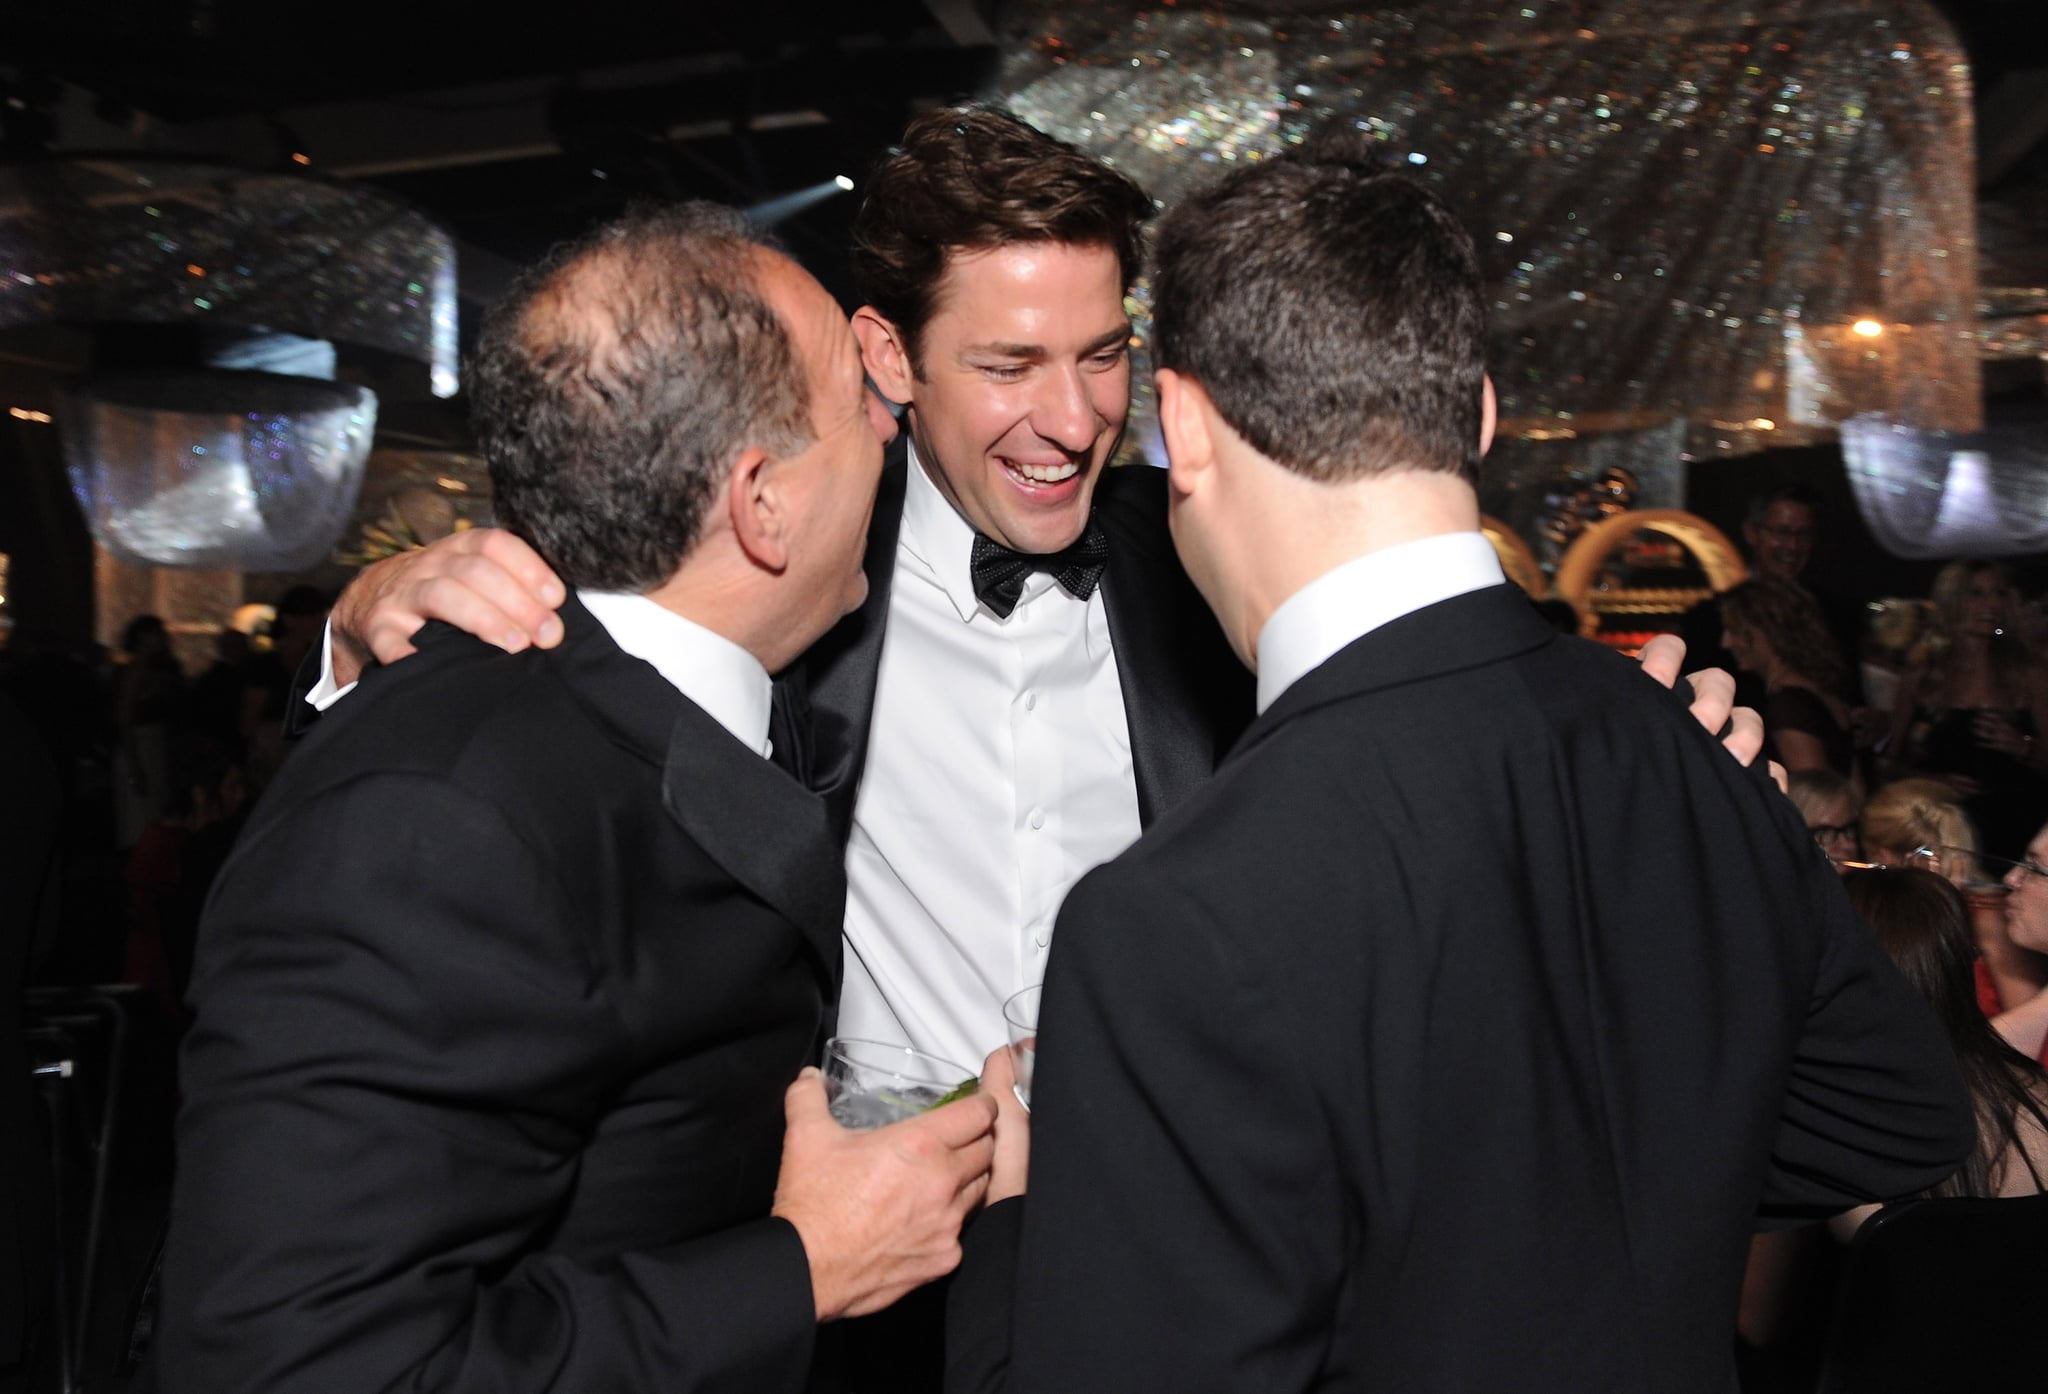 John Krasinski jokes with friends.